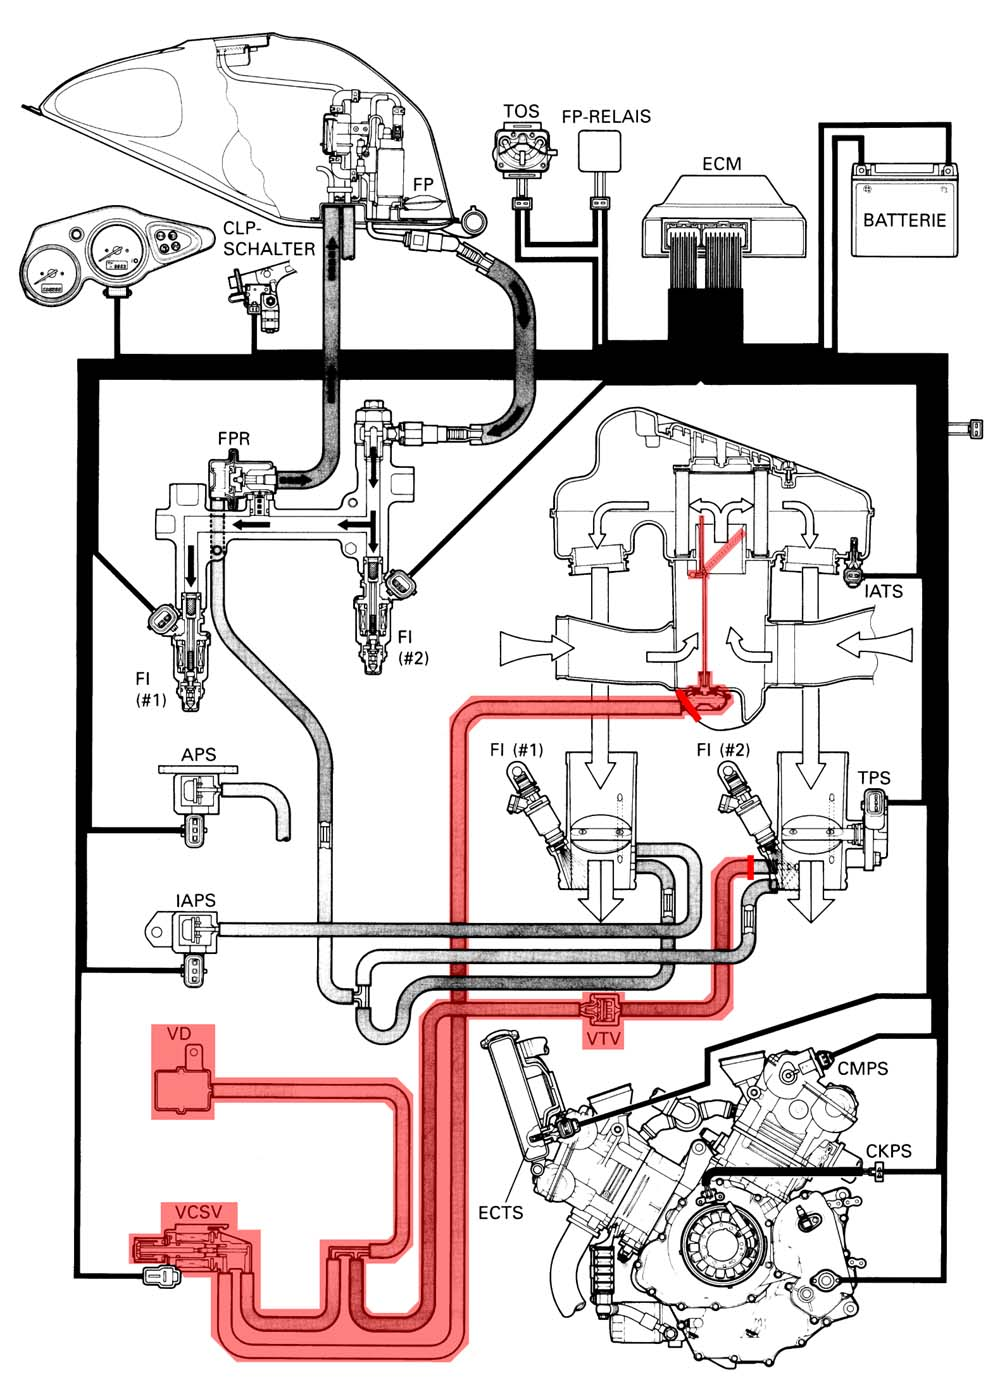 98 Suzuki Tl1000r Wiring Diagram 2006 Sv650 Vacuum Hose Question With Pics Rh Tlzone Net C50